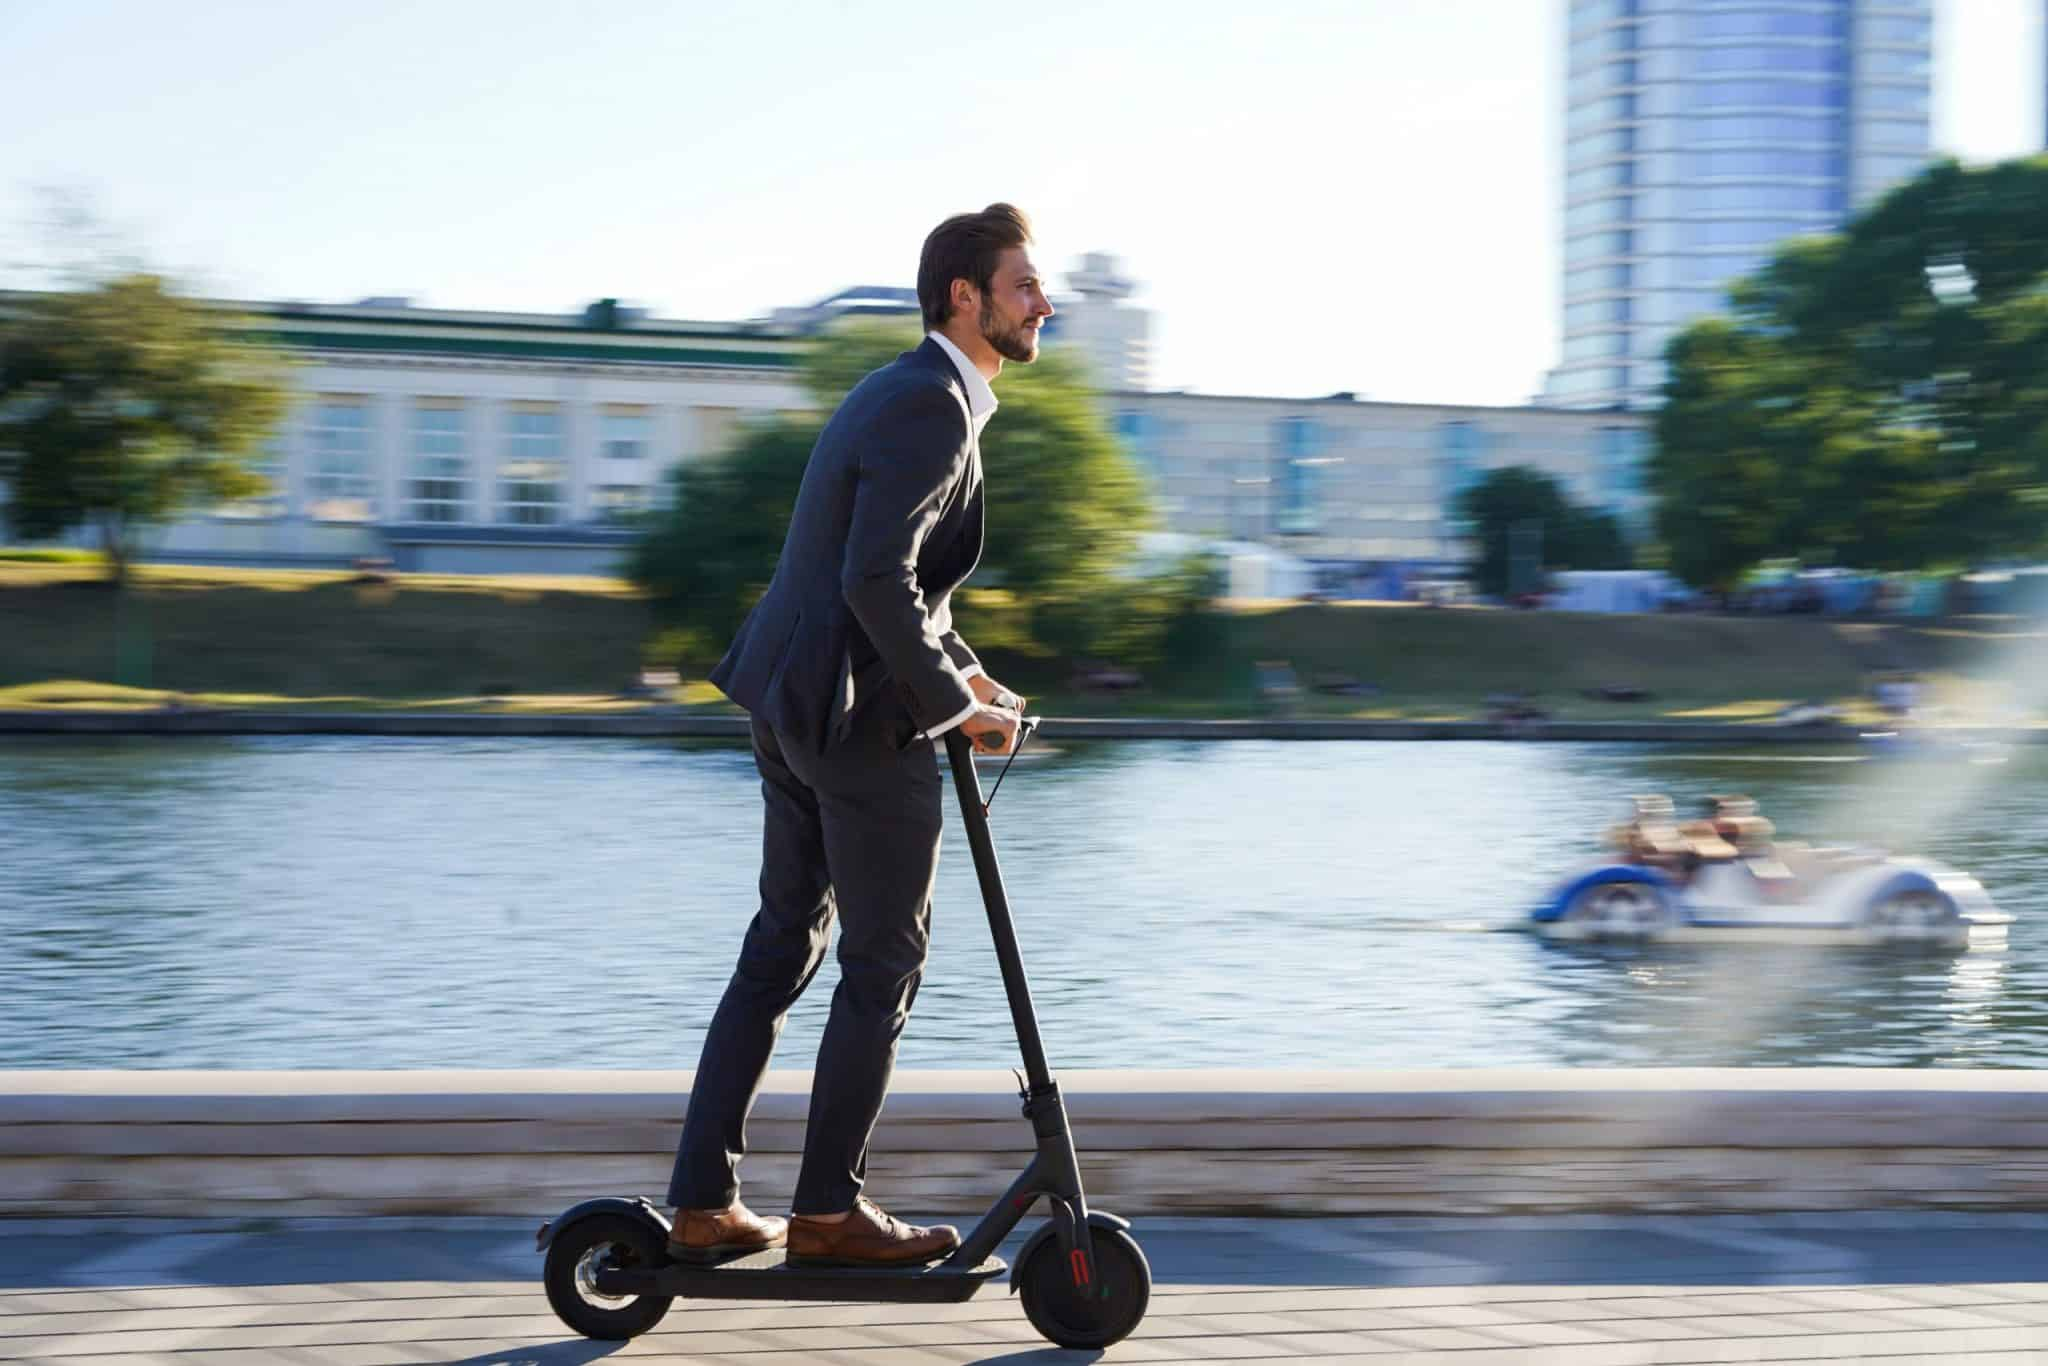 Man in business suit riding an e-scooter in Paris